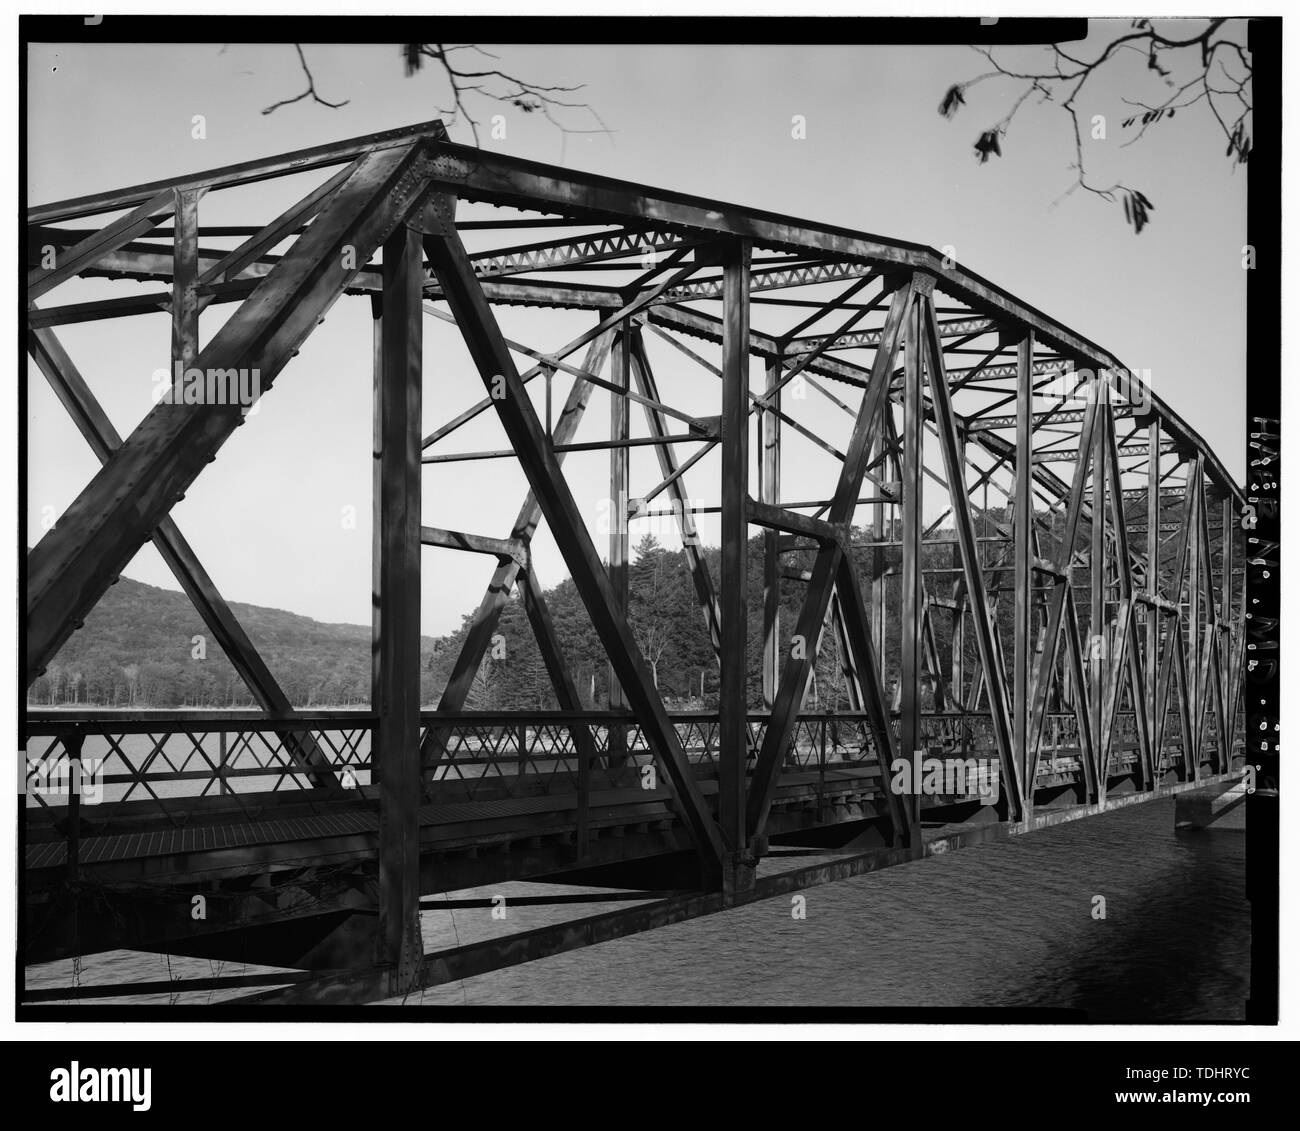 Deep Creek Black and White Stock Photos & Images - Alamy